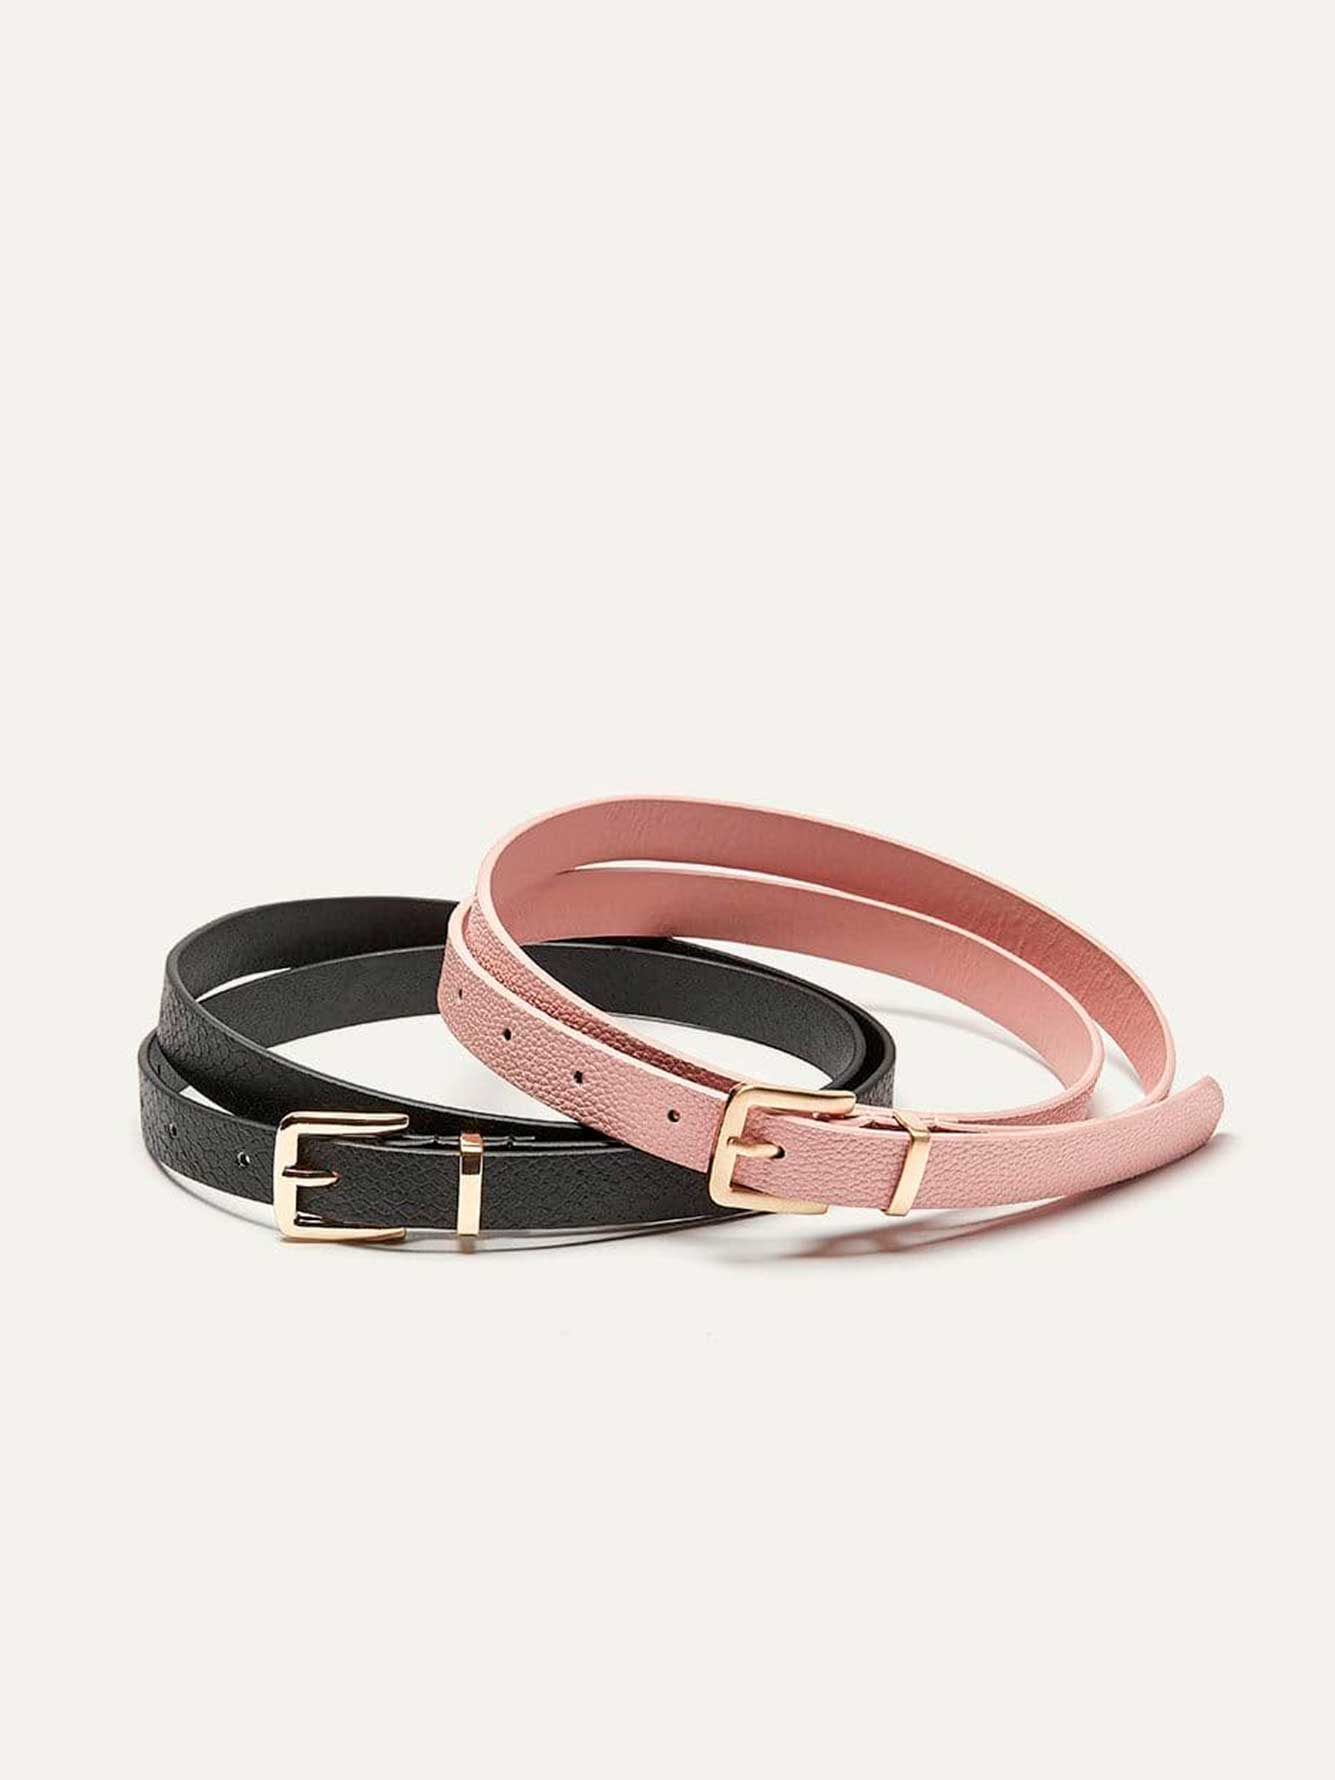 Set of 2 Skinny Belt